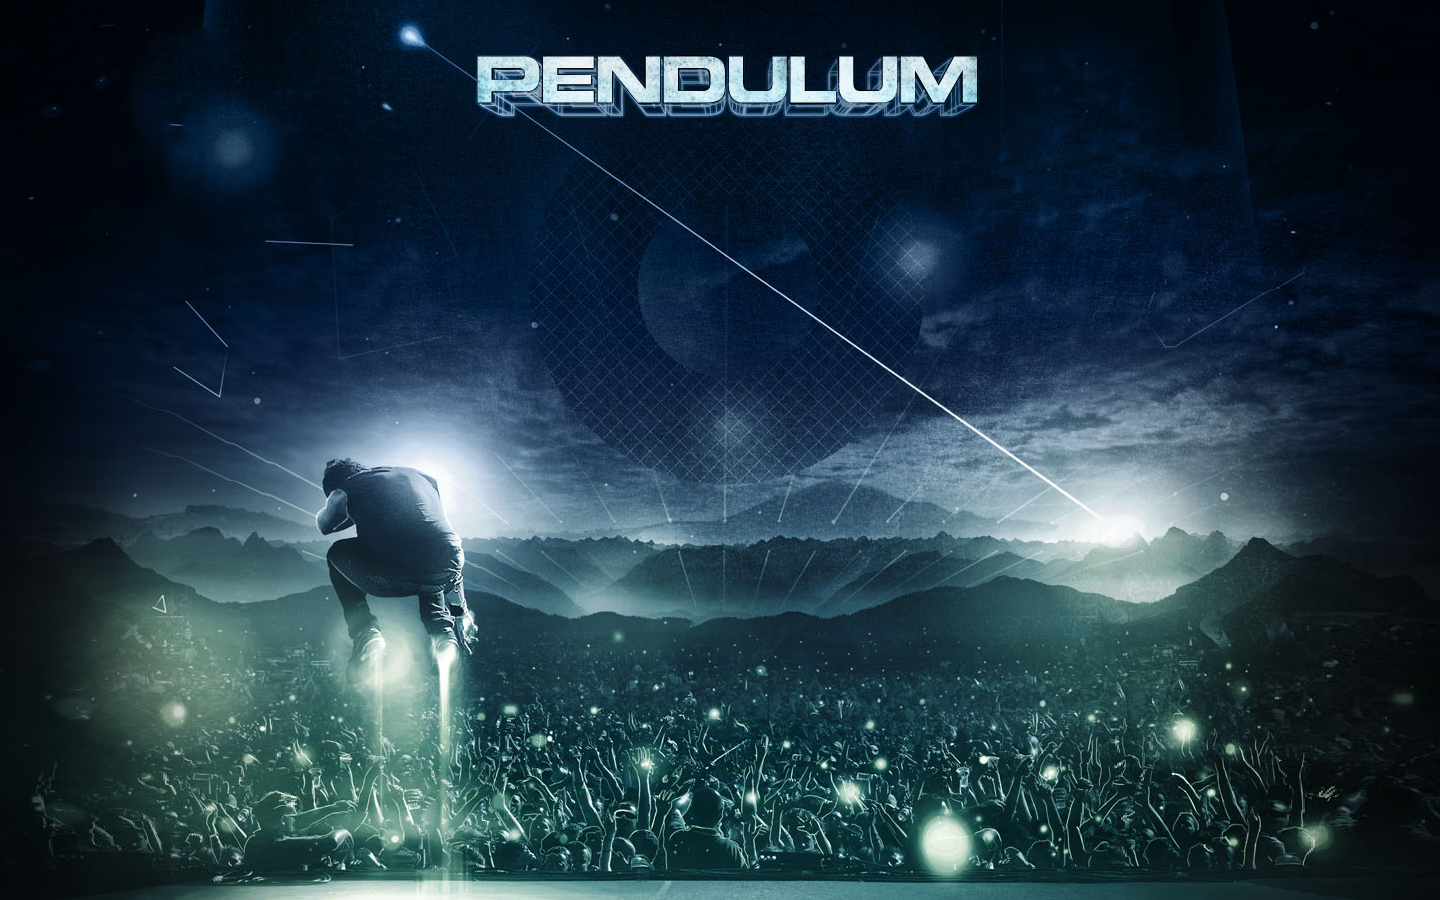 Pendulum, HQFX Backgrounds, Ashlyn Cookingham